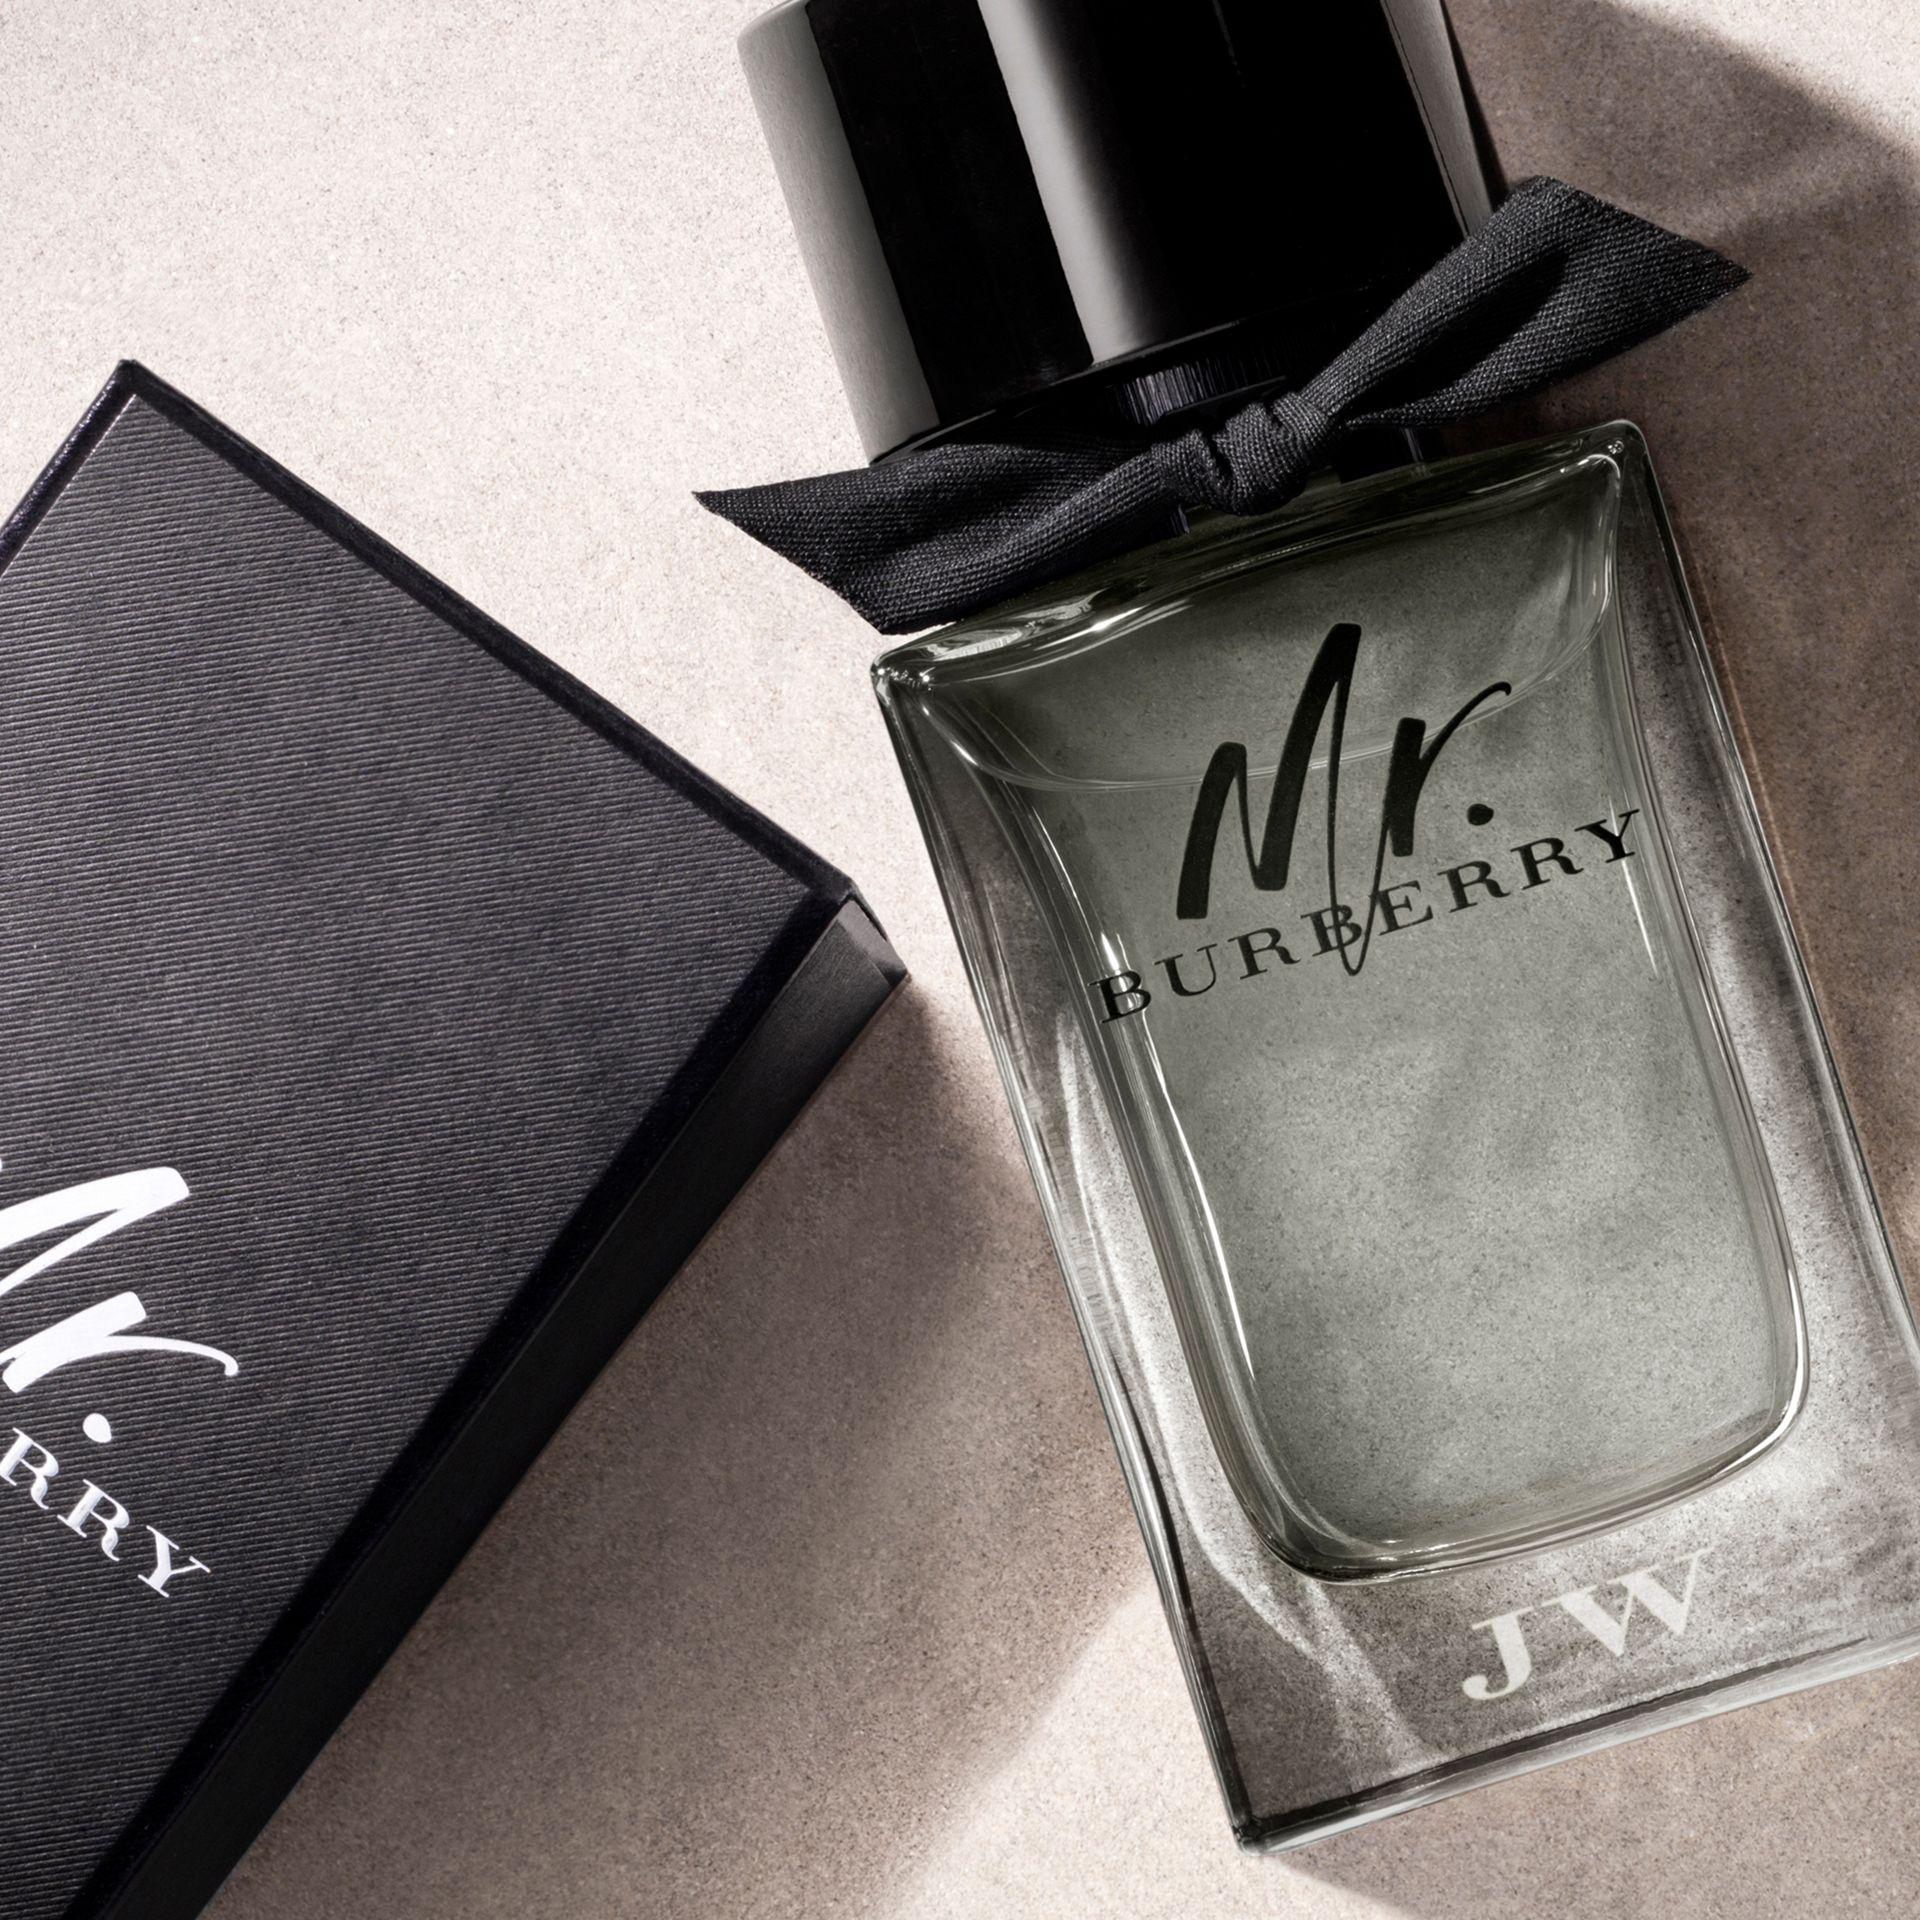 Mr. Burberry Eau de Toilette 1000ml | Burberry Canada - gallery image 3